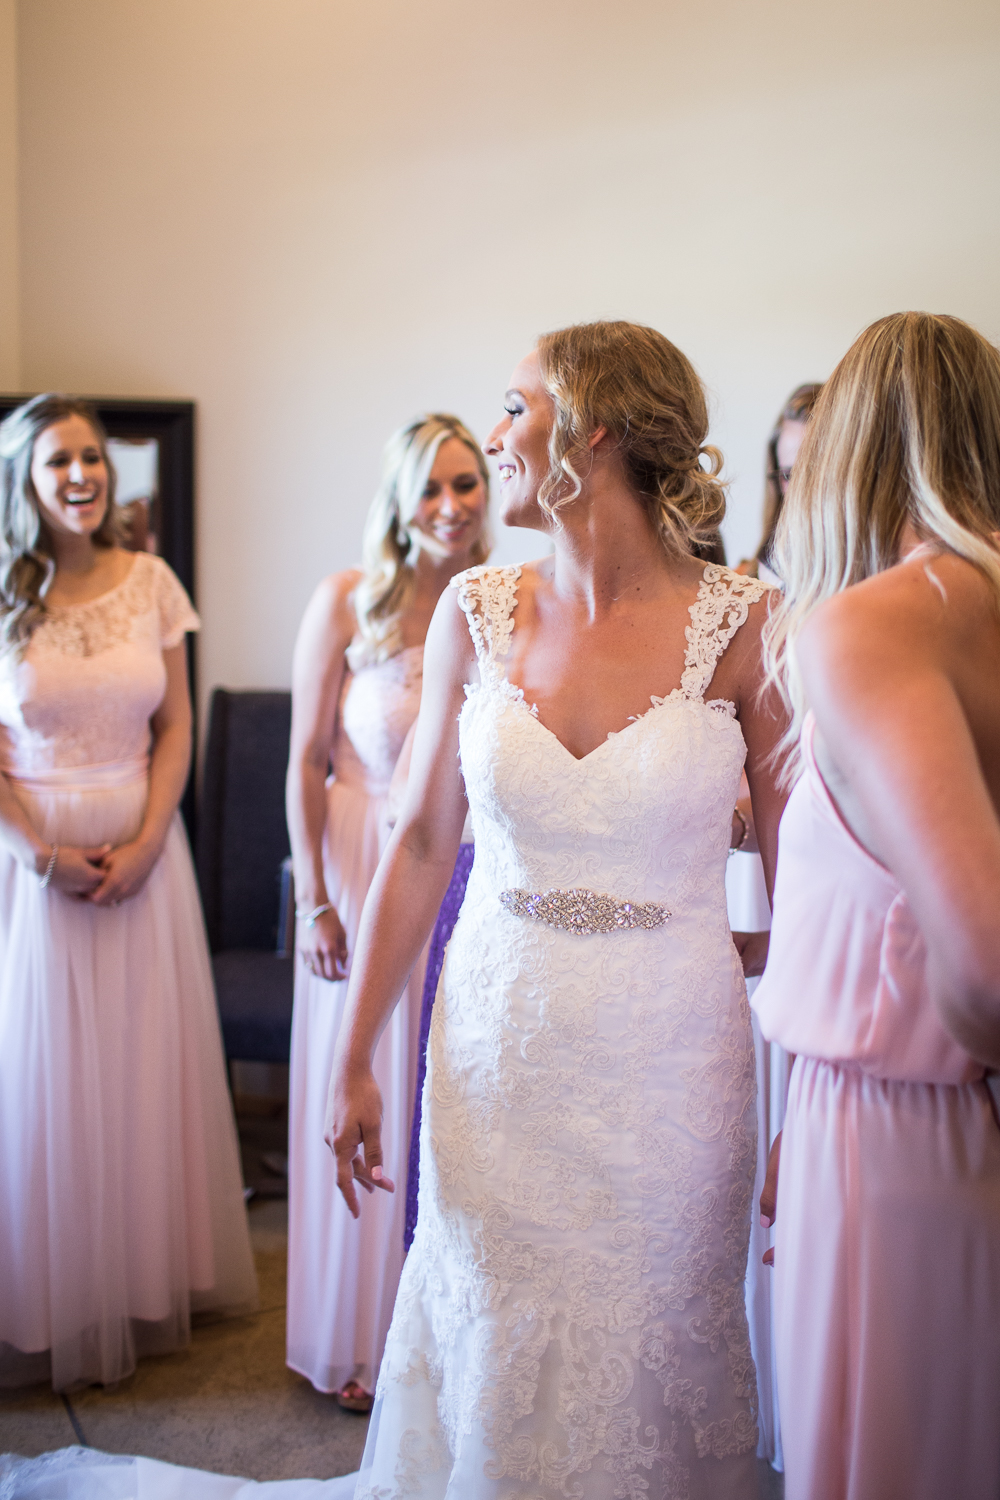 bride with her bridesmaids at Rick's Place in Tulsa, Oklahoma